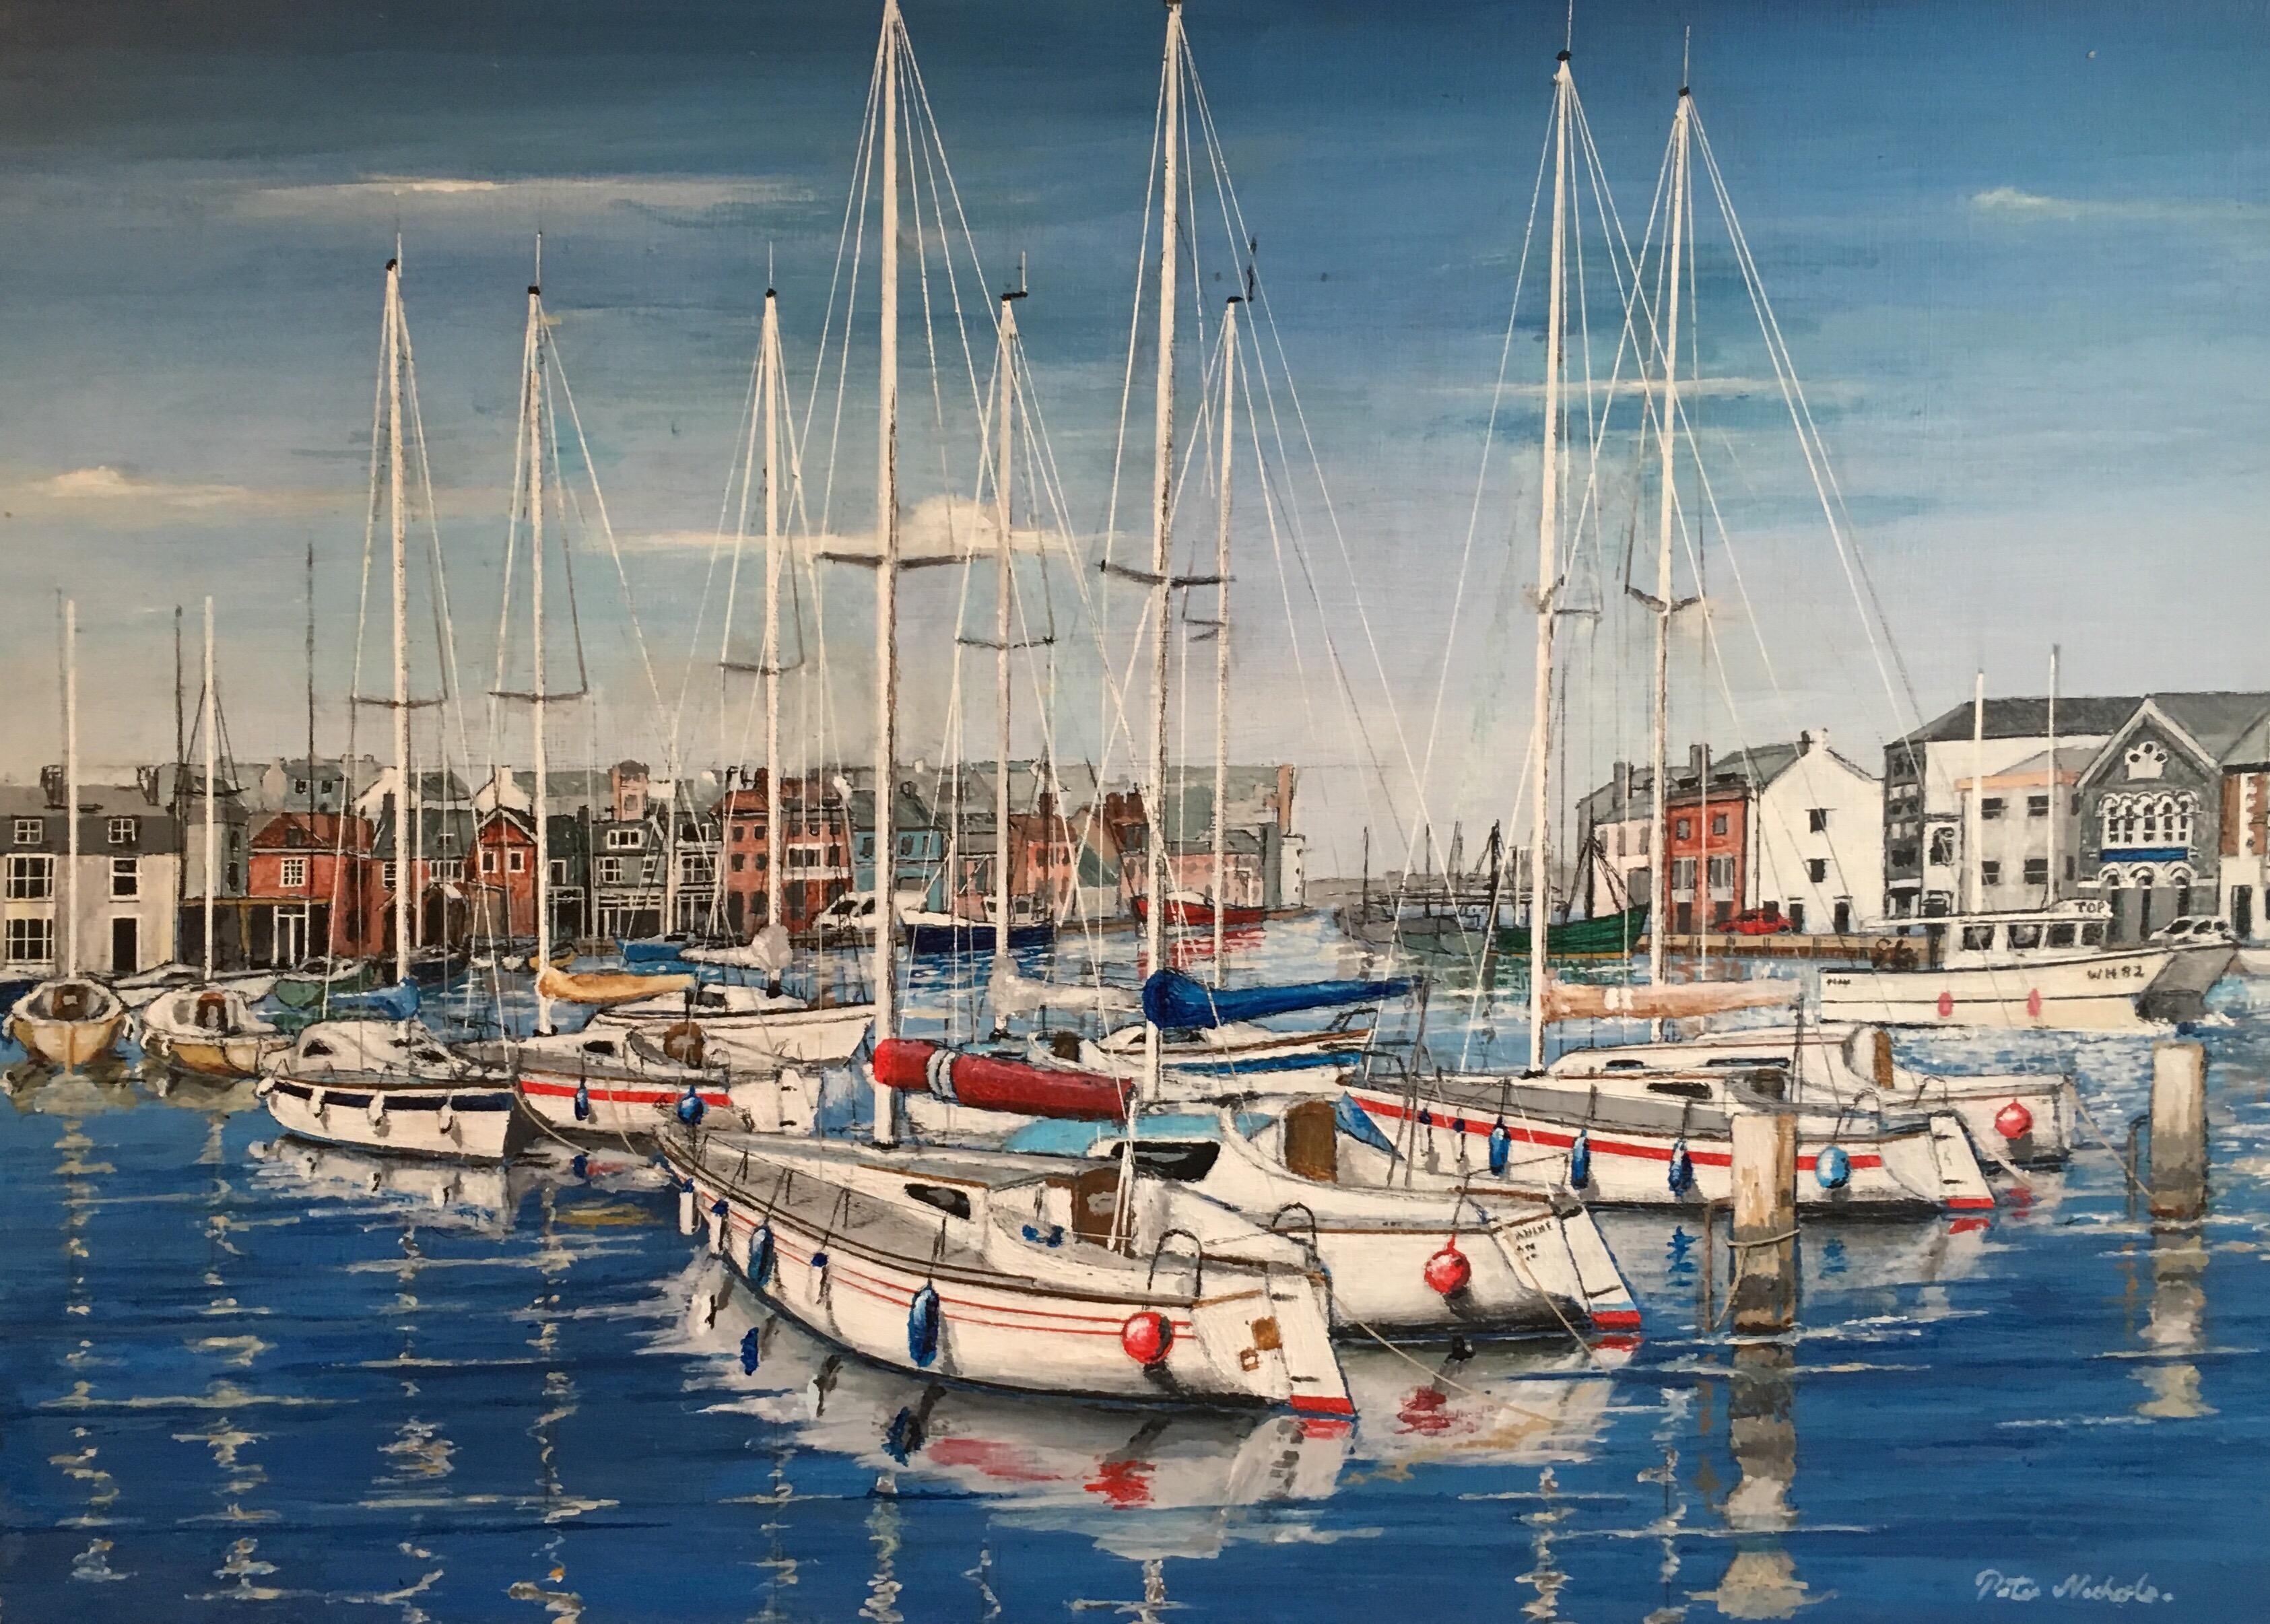 Yachts in Harbour, Nautical Themed Landscape Large Signed Oil Painting